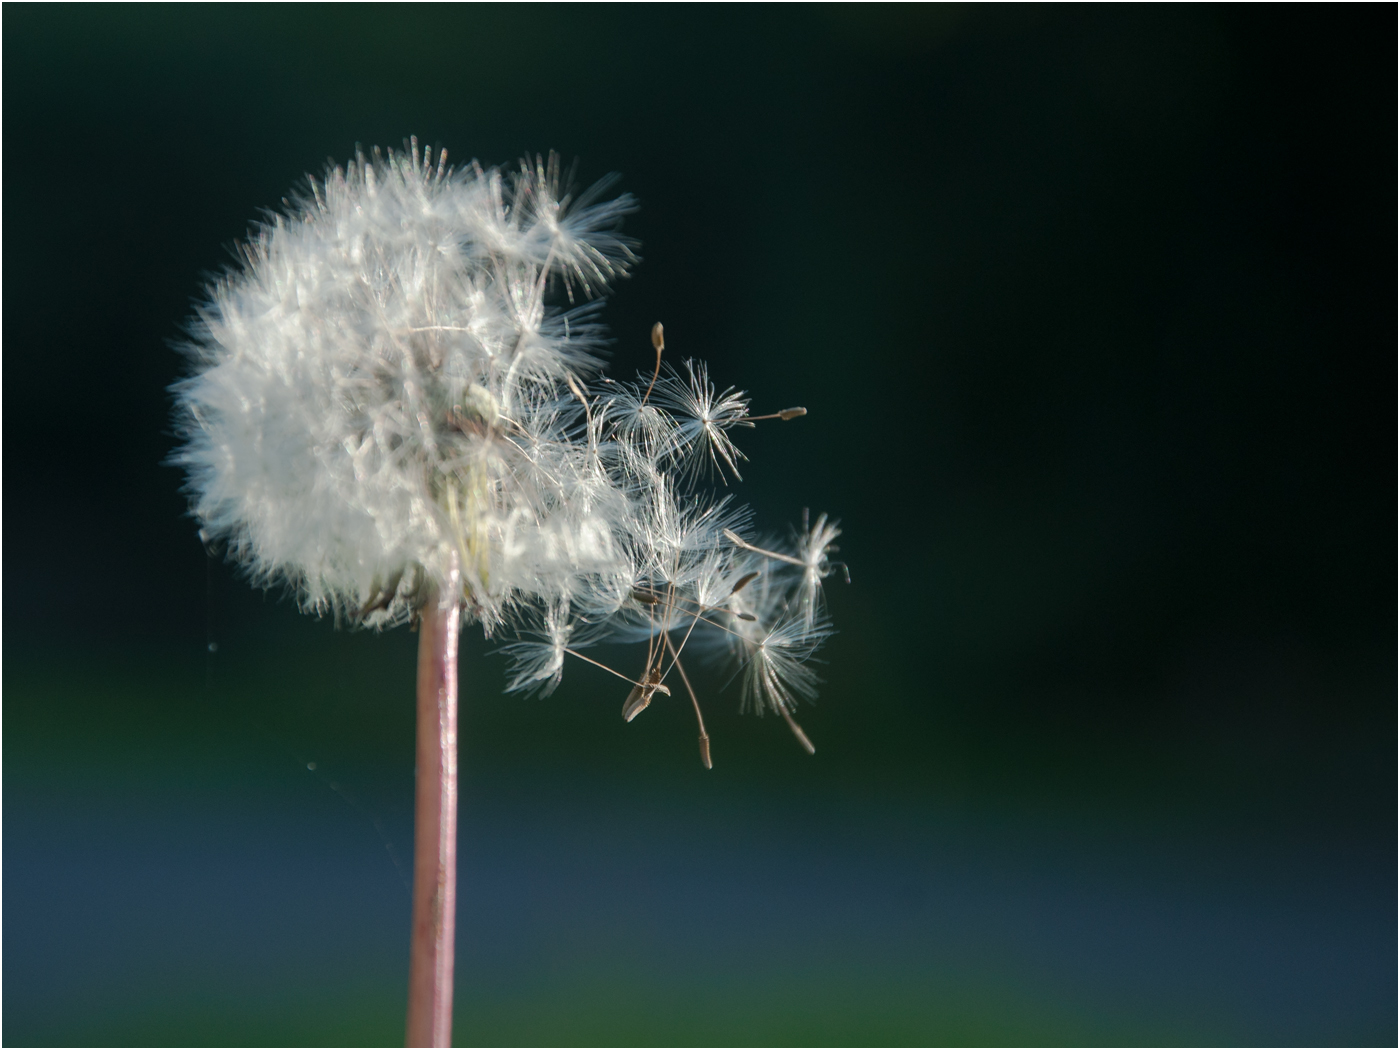 MAKE A WISH by MaryLou Winters